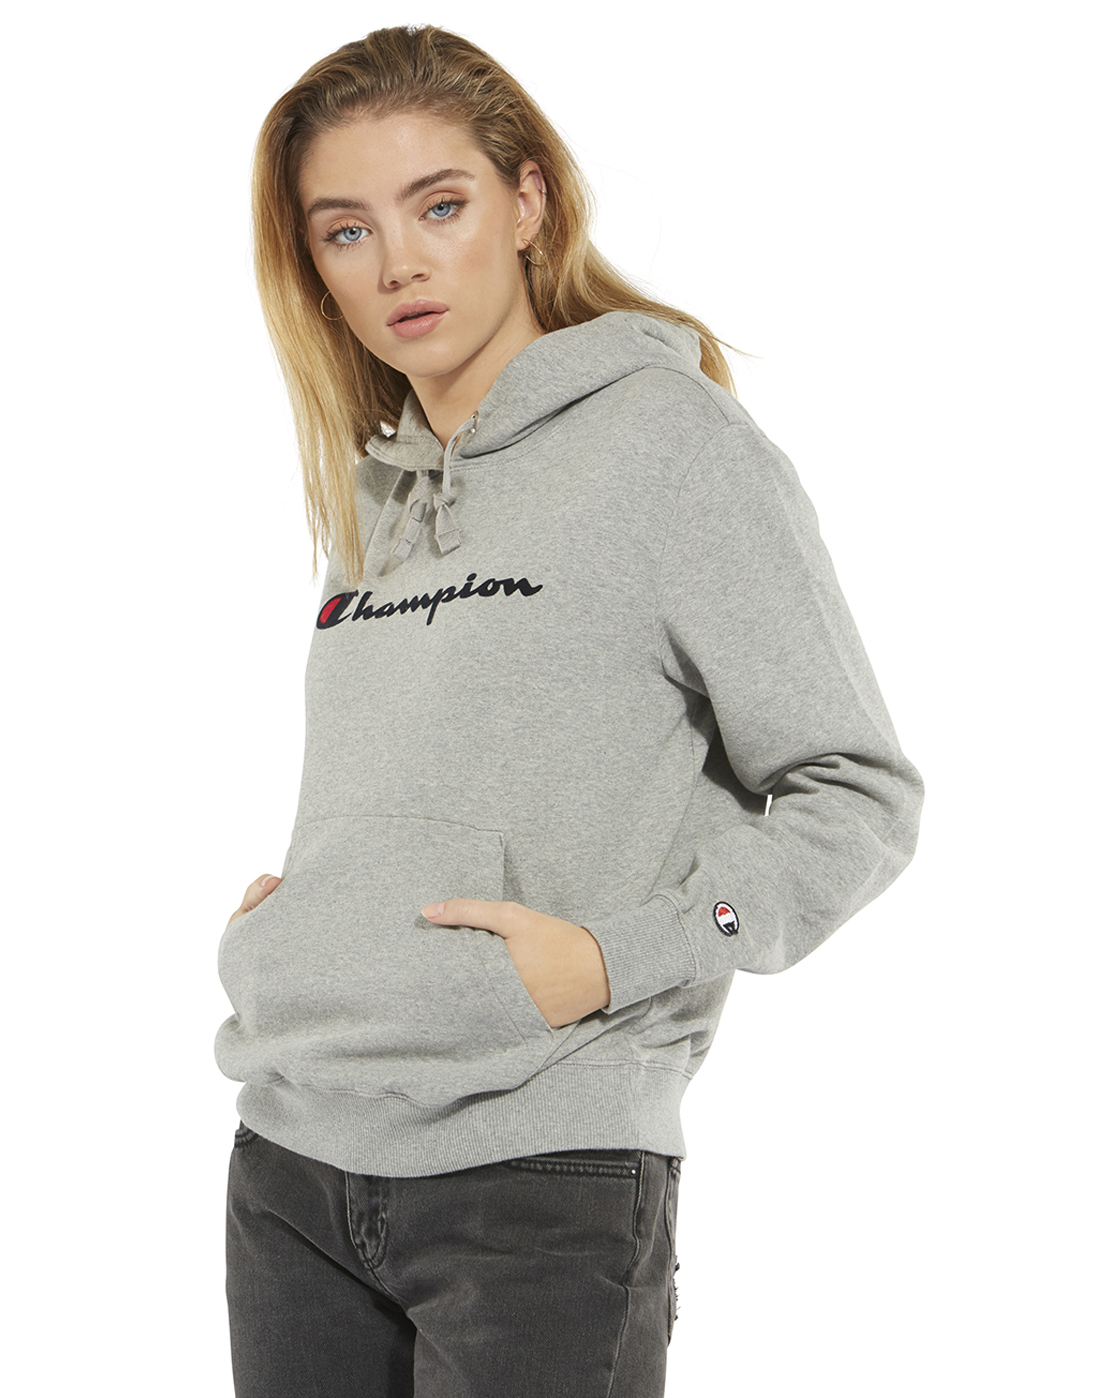 58ae4556 Women's Grey Champion Hoodie | Life Style Sports